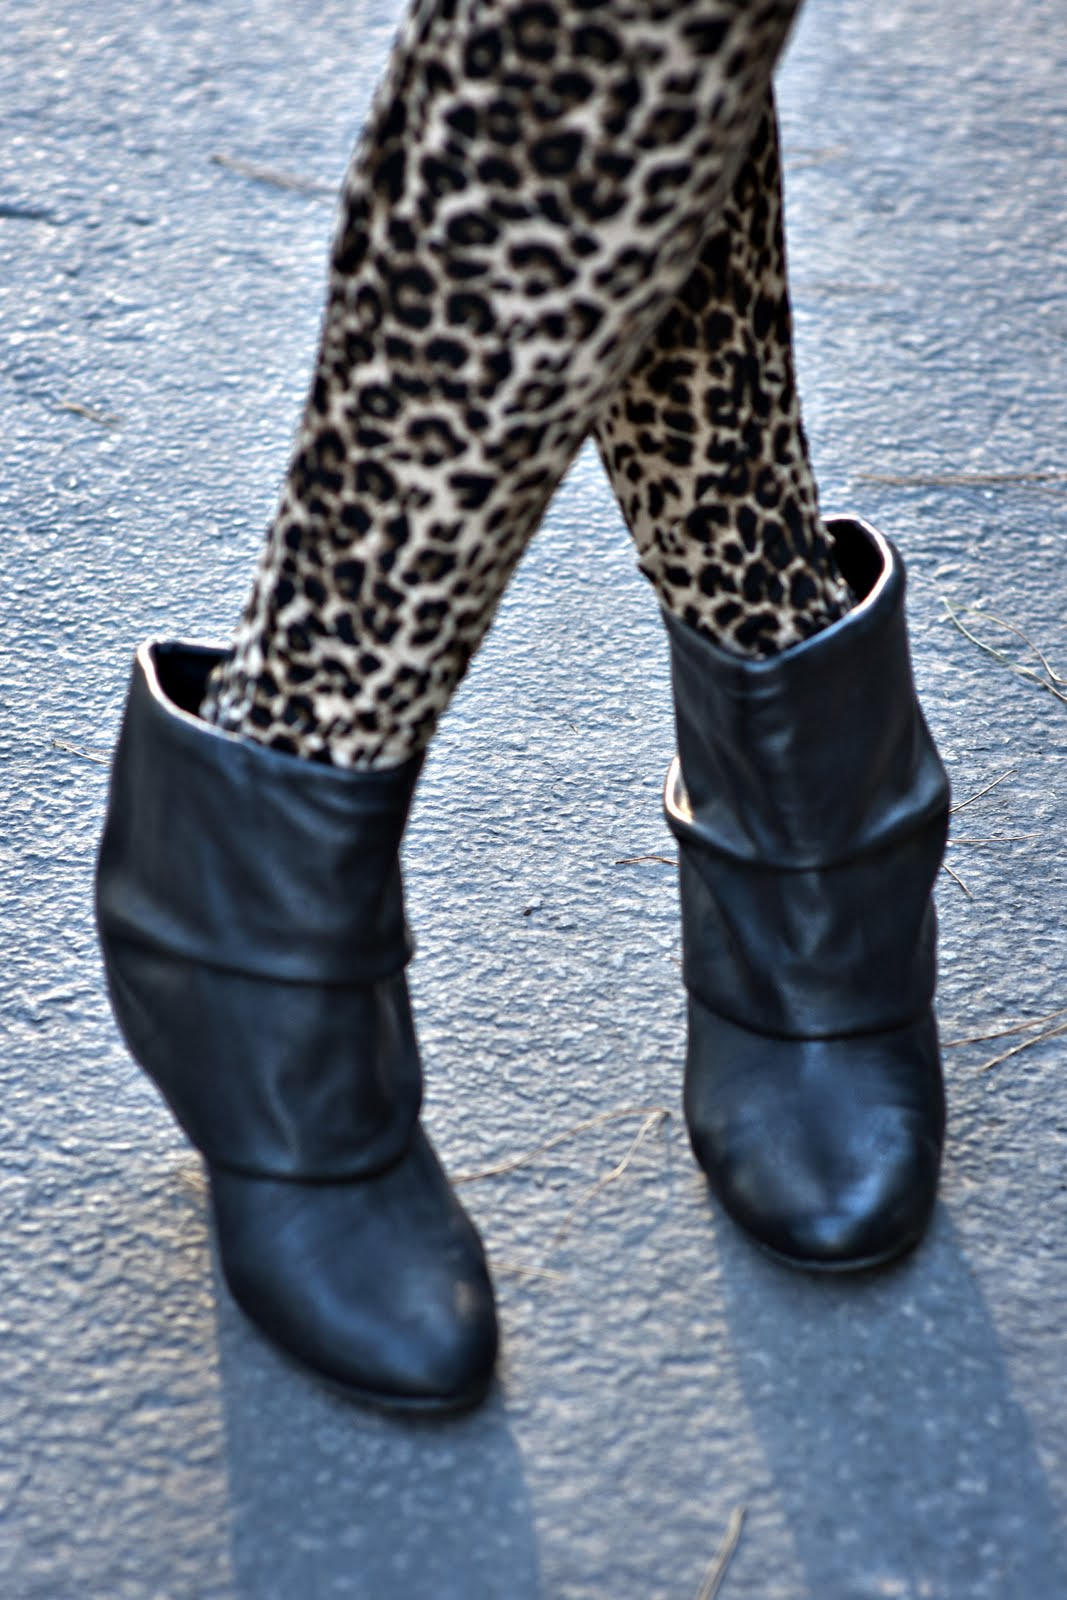 Black Booties, Leopard Print Leggings